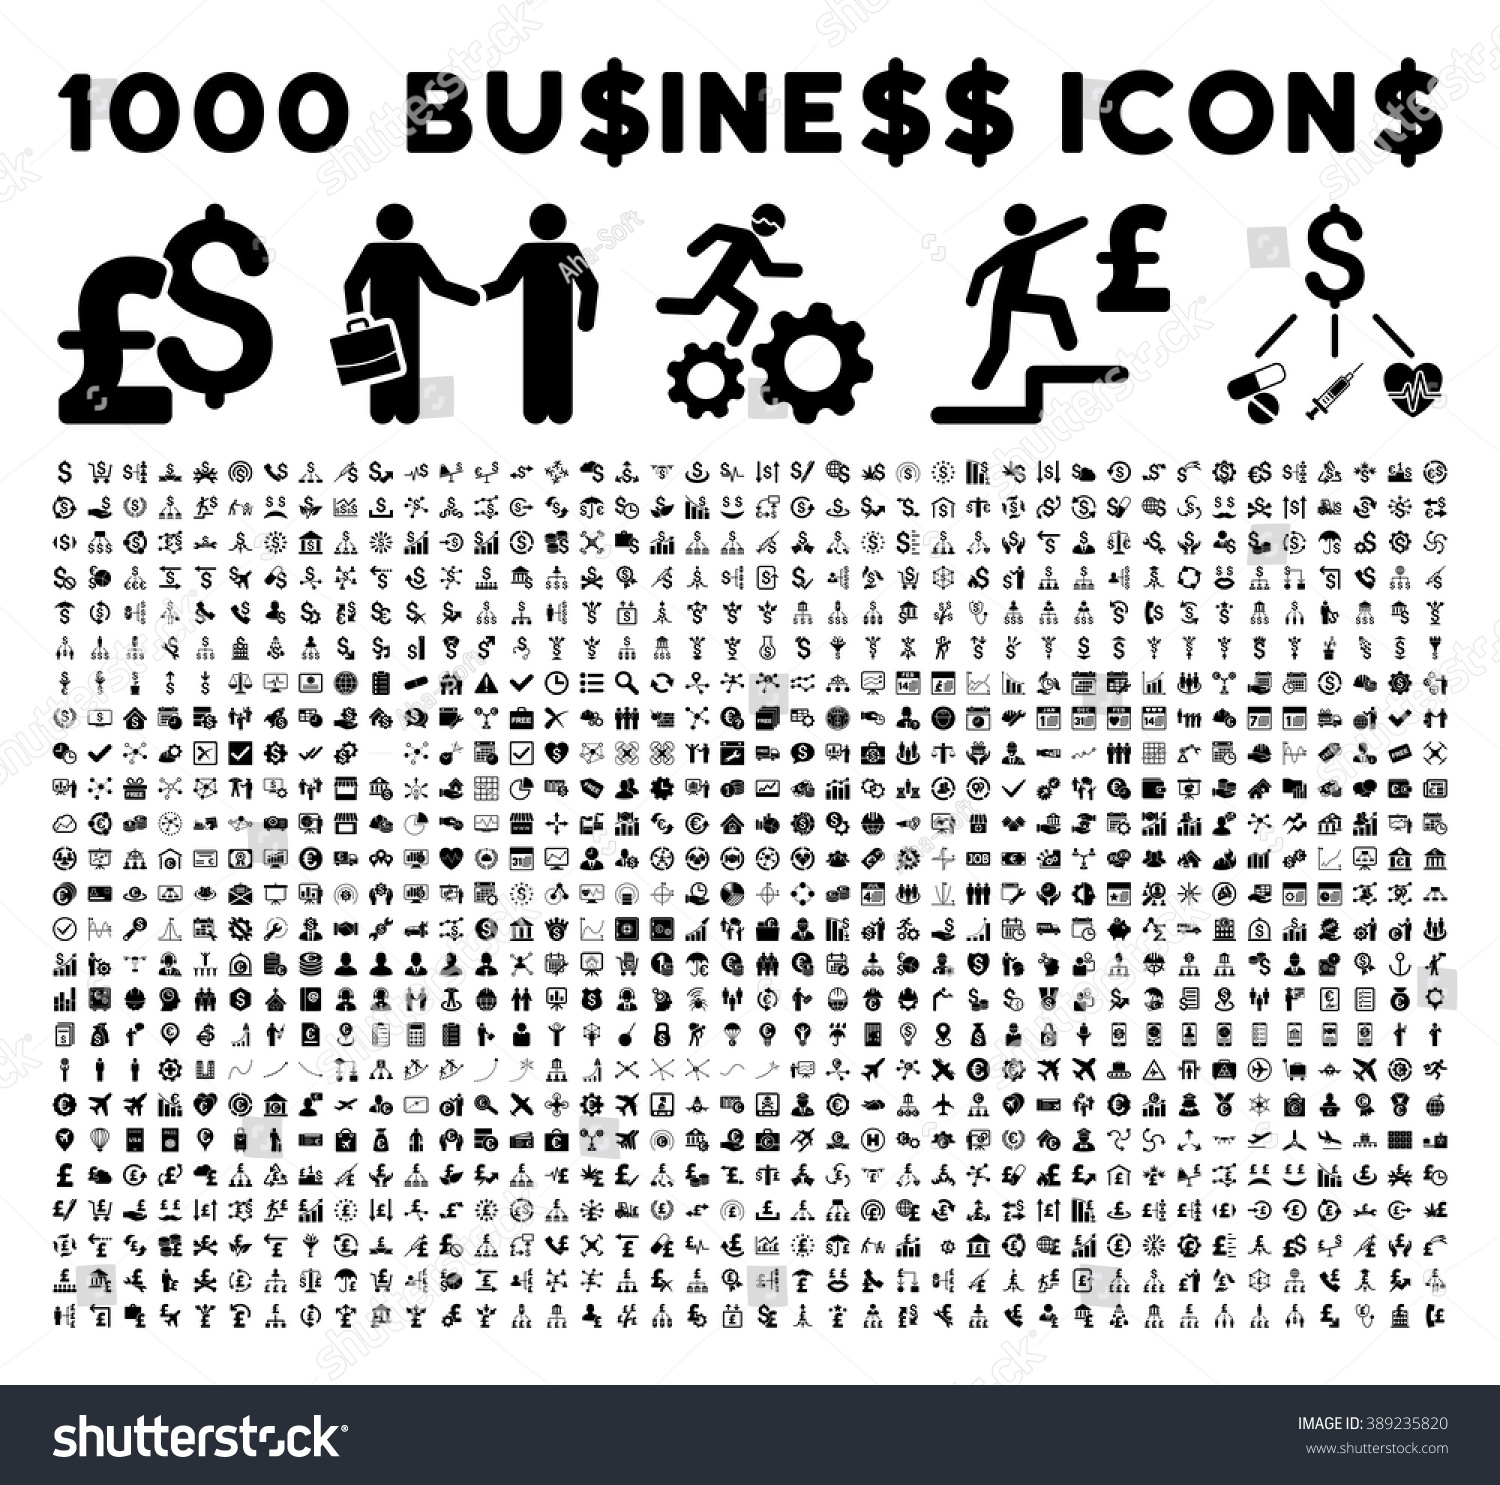 1000 Business Icons Bank Service Pictograms 389235820 on Insurance Symbol Of A Shield With Dollar Sign Free